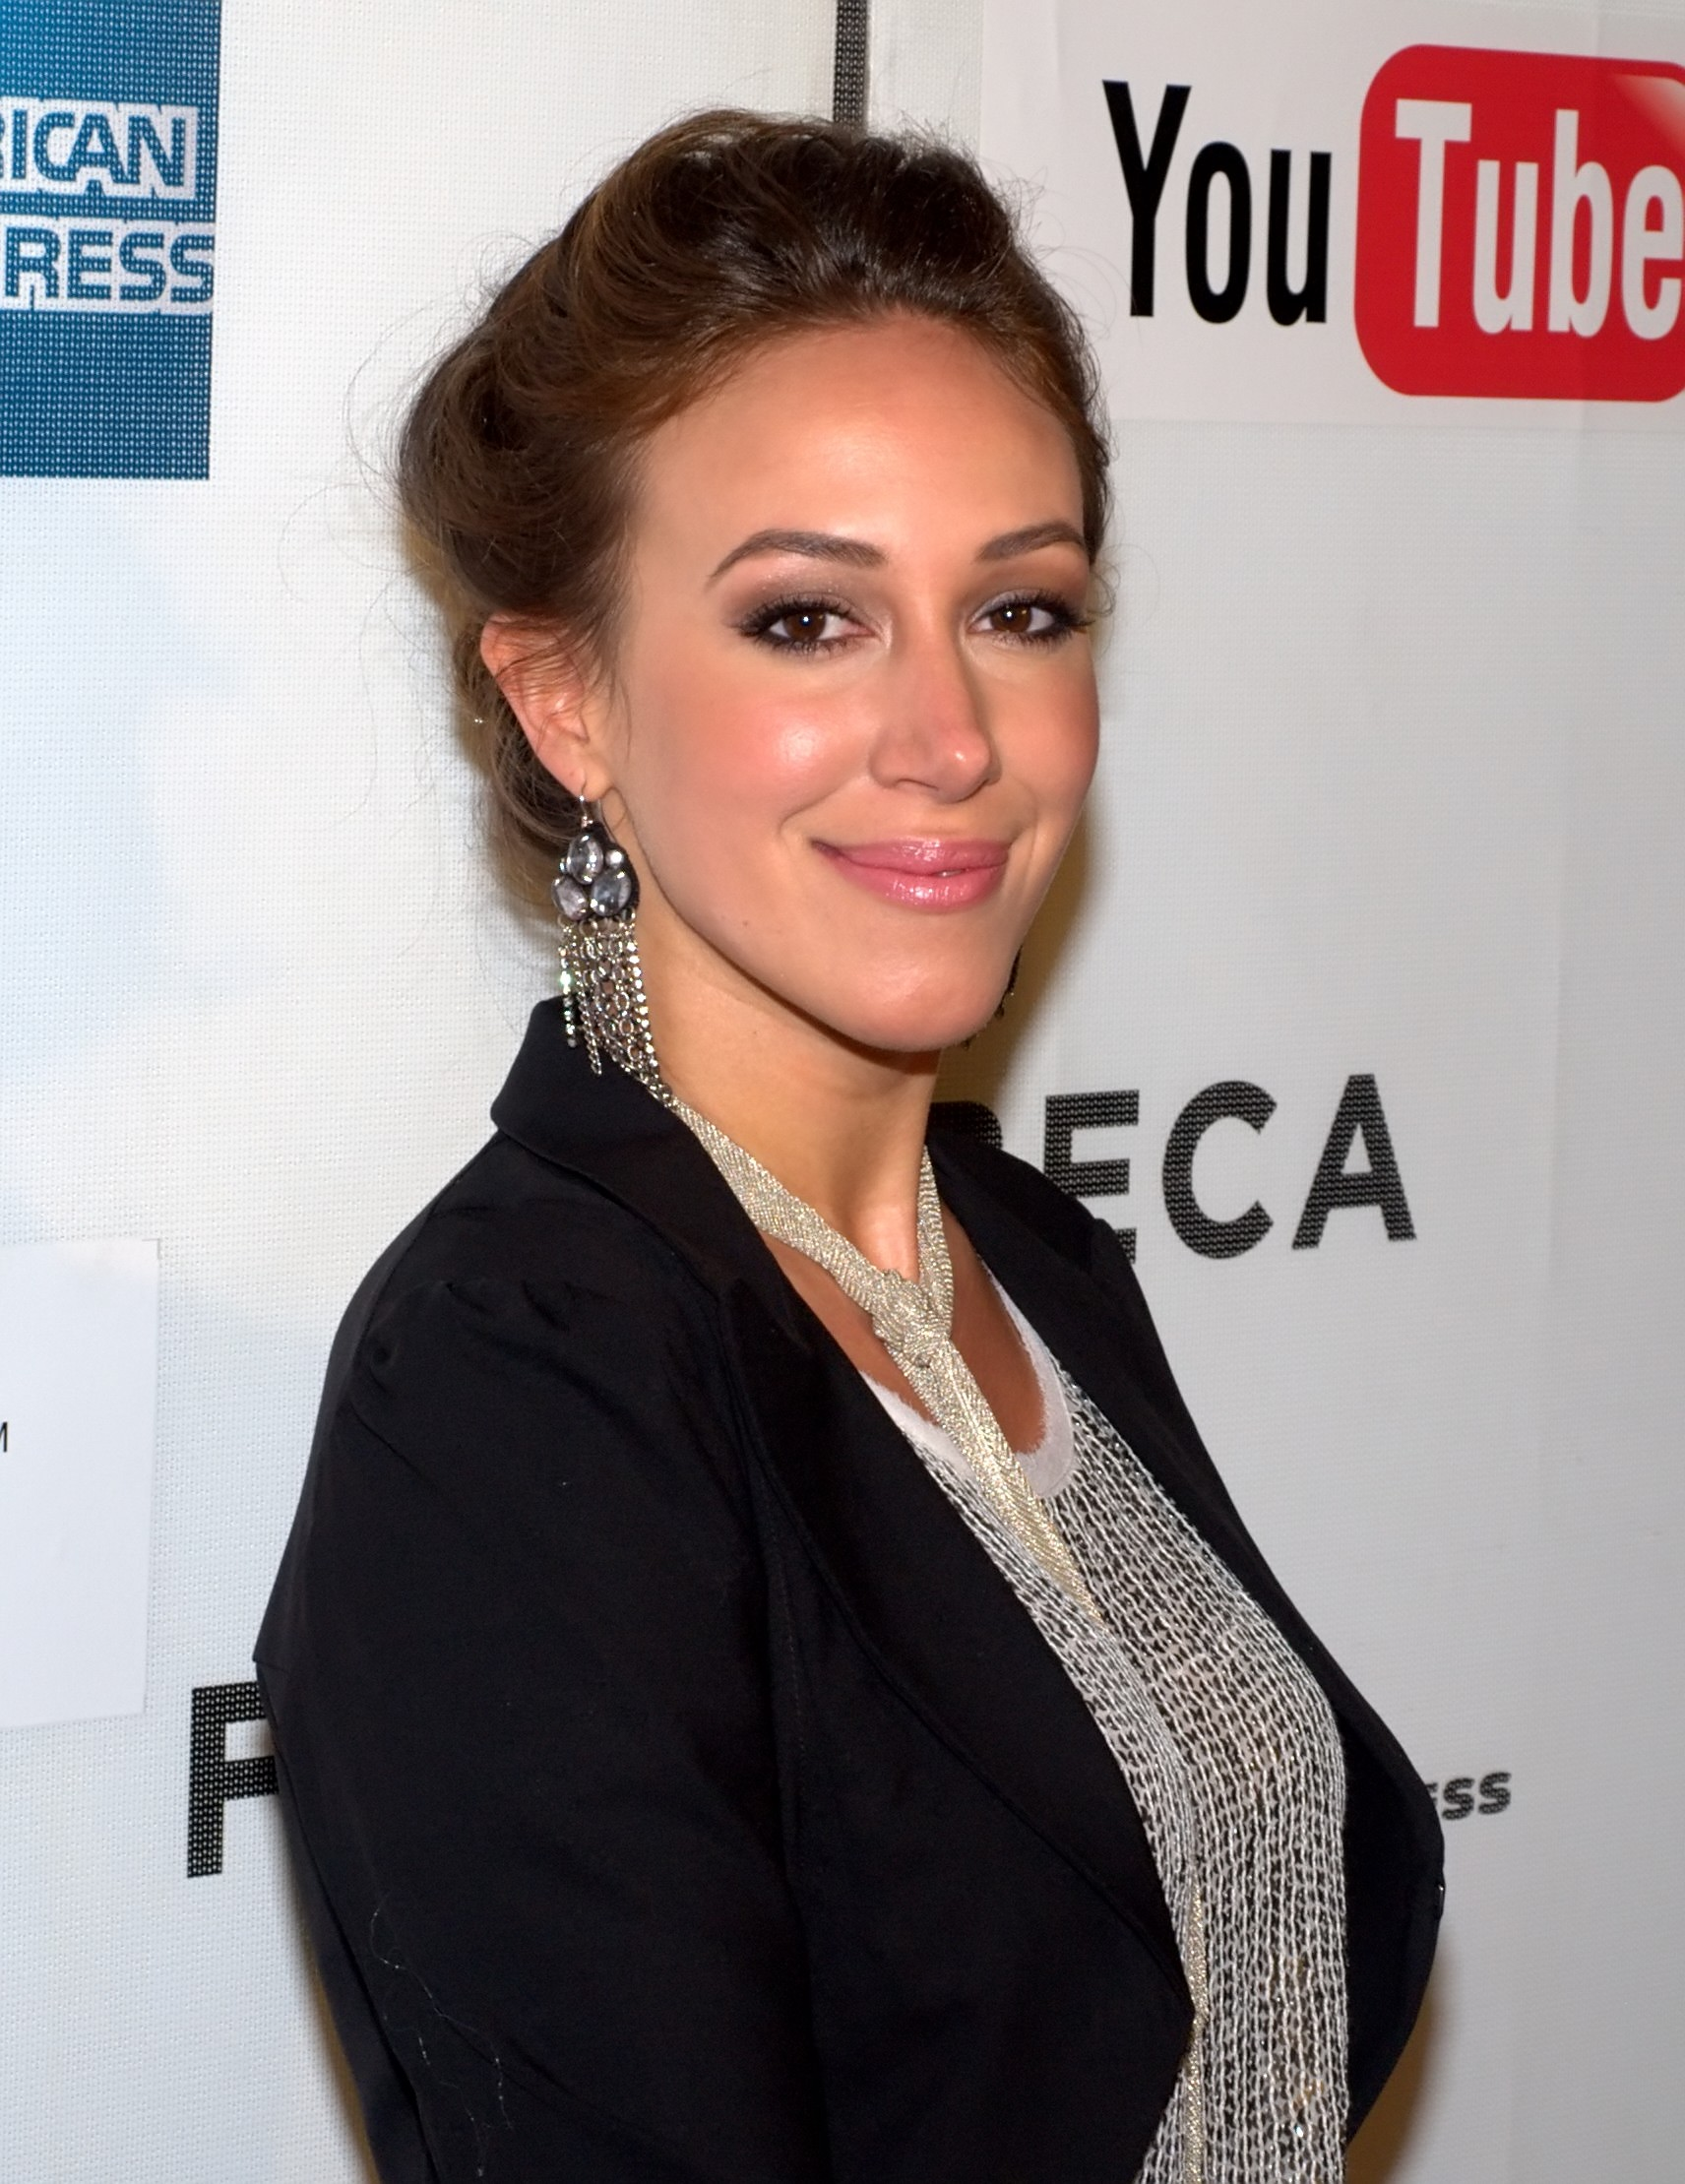 Haylie duff who she is dating